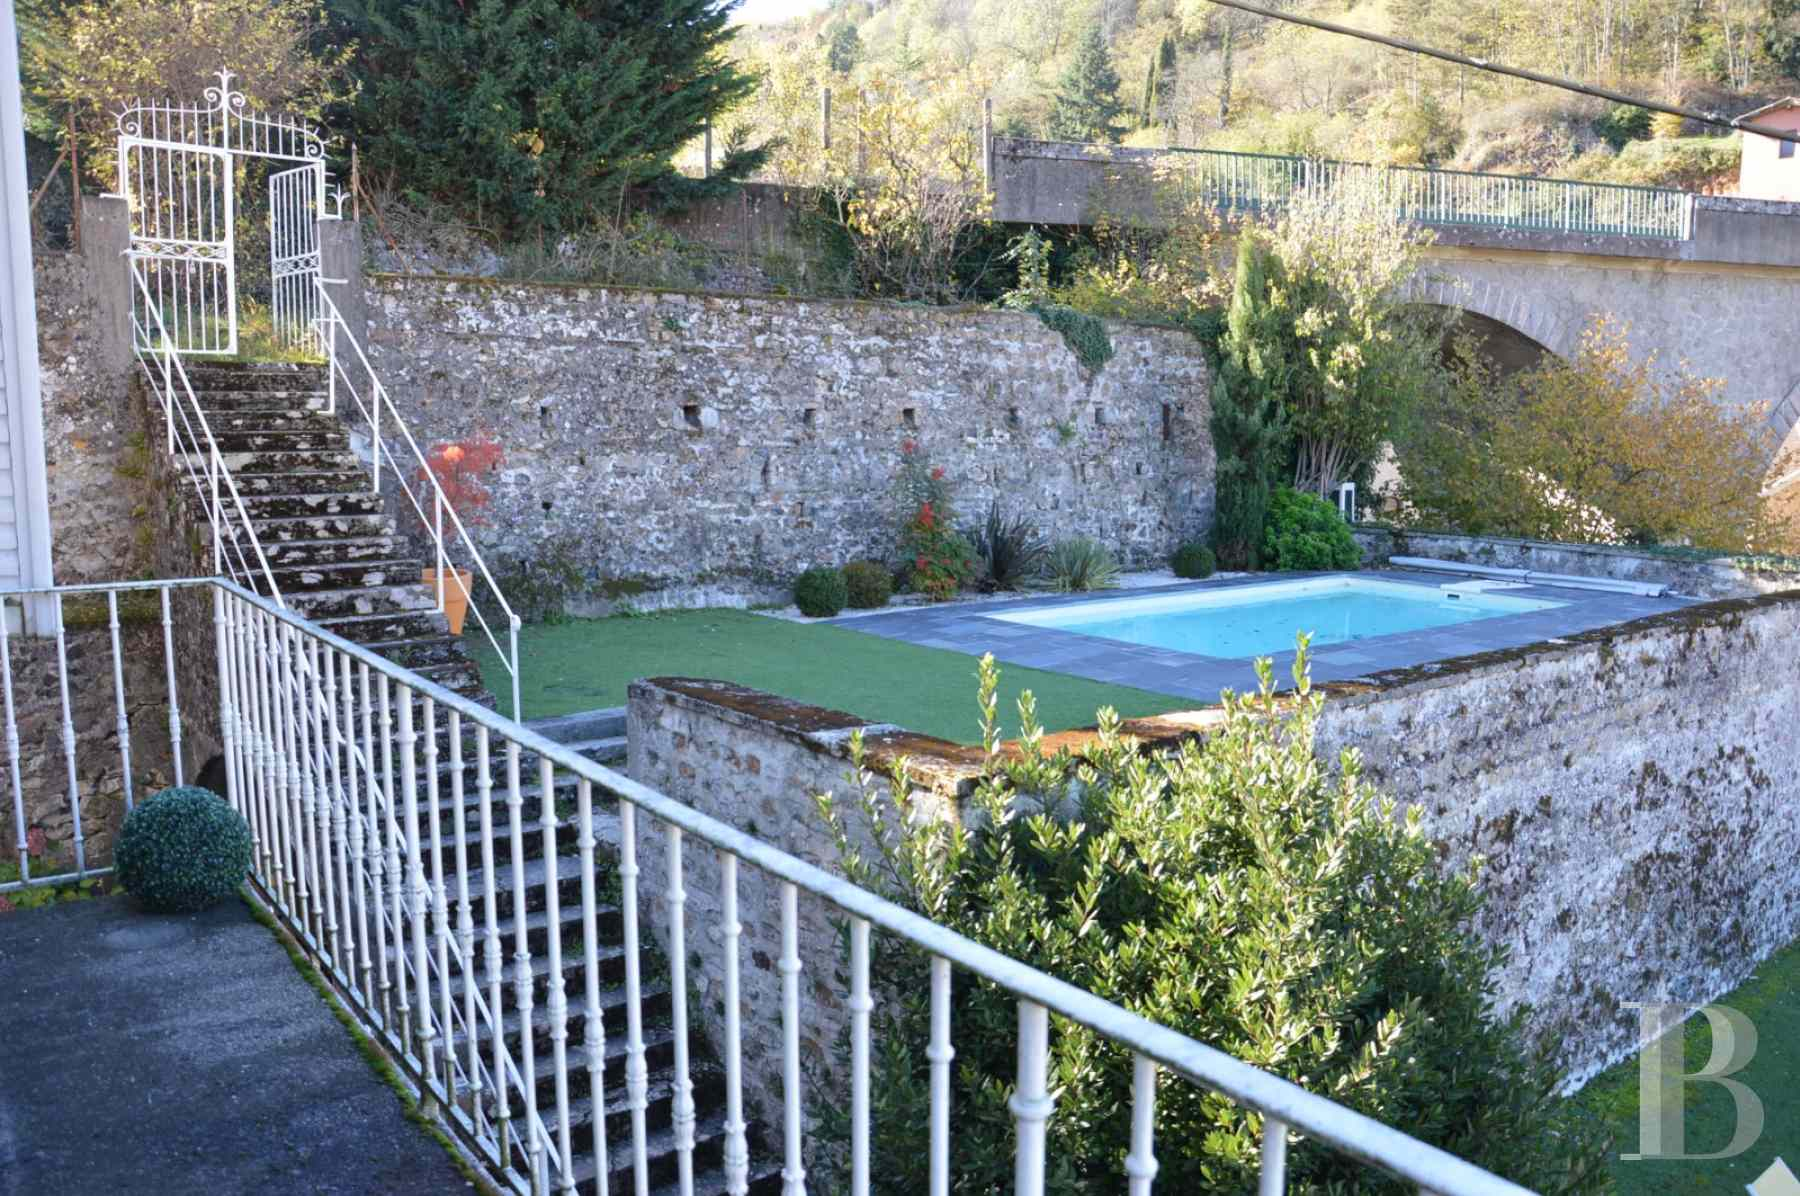 property for sale France rhones alps residence beaujolais - 10 zoom